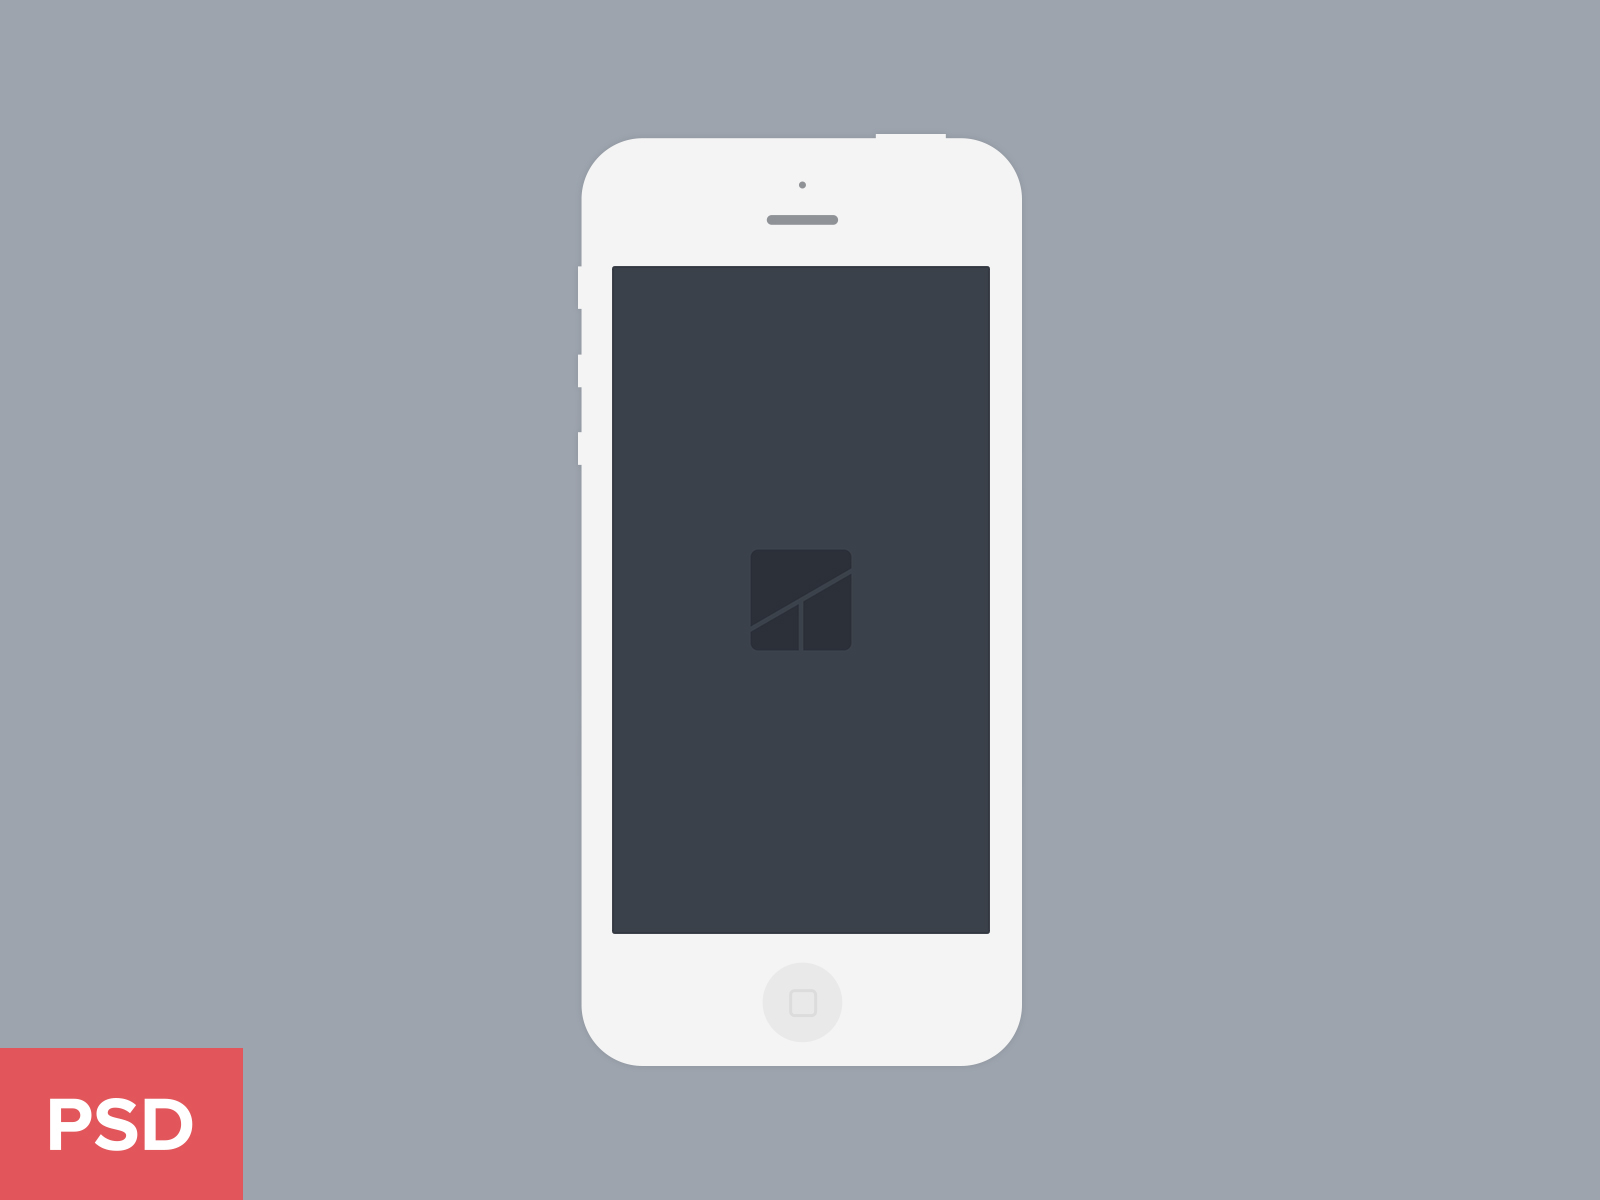 13 White IPhone Vector PSD Images